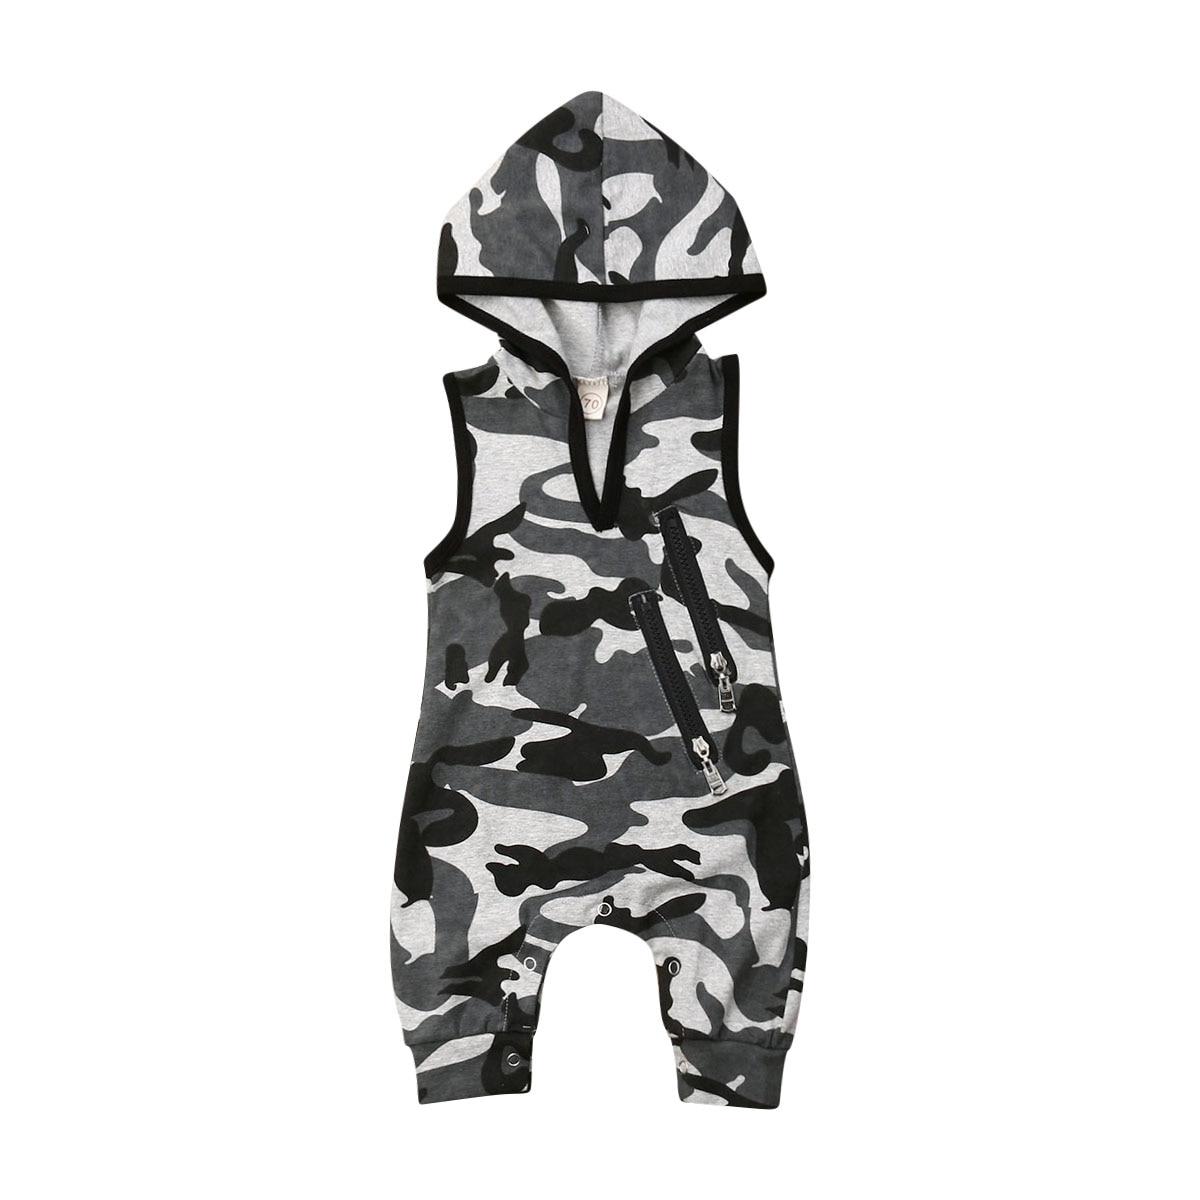 0-24M Summer Clothing Toddler Baby Boy Hooded Newborn Rompers Baby Camouflage Print Sleeveless Zip Jumpsuits Fashion